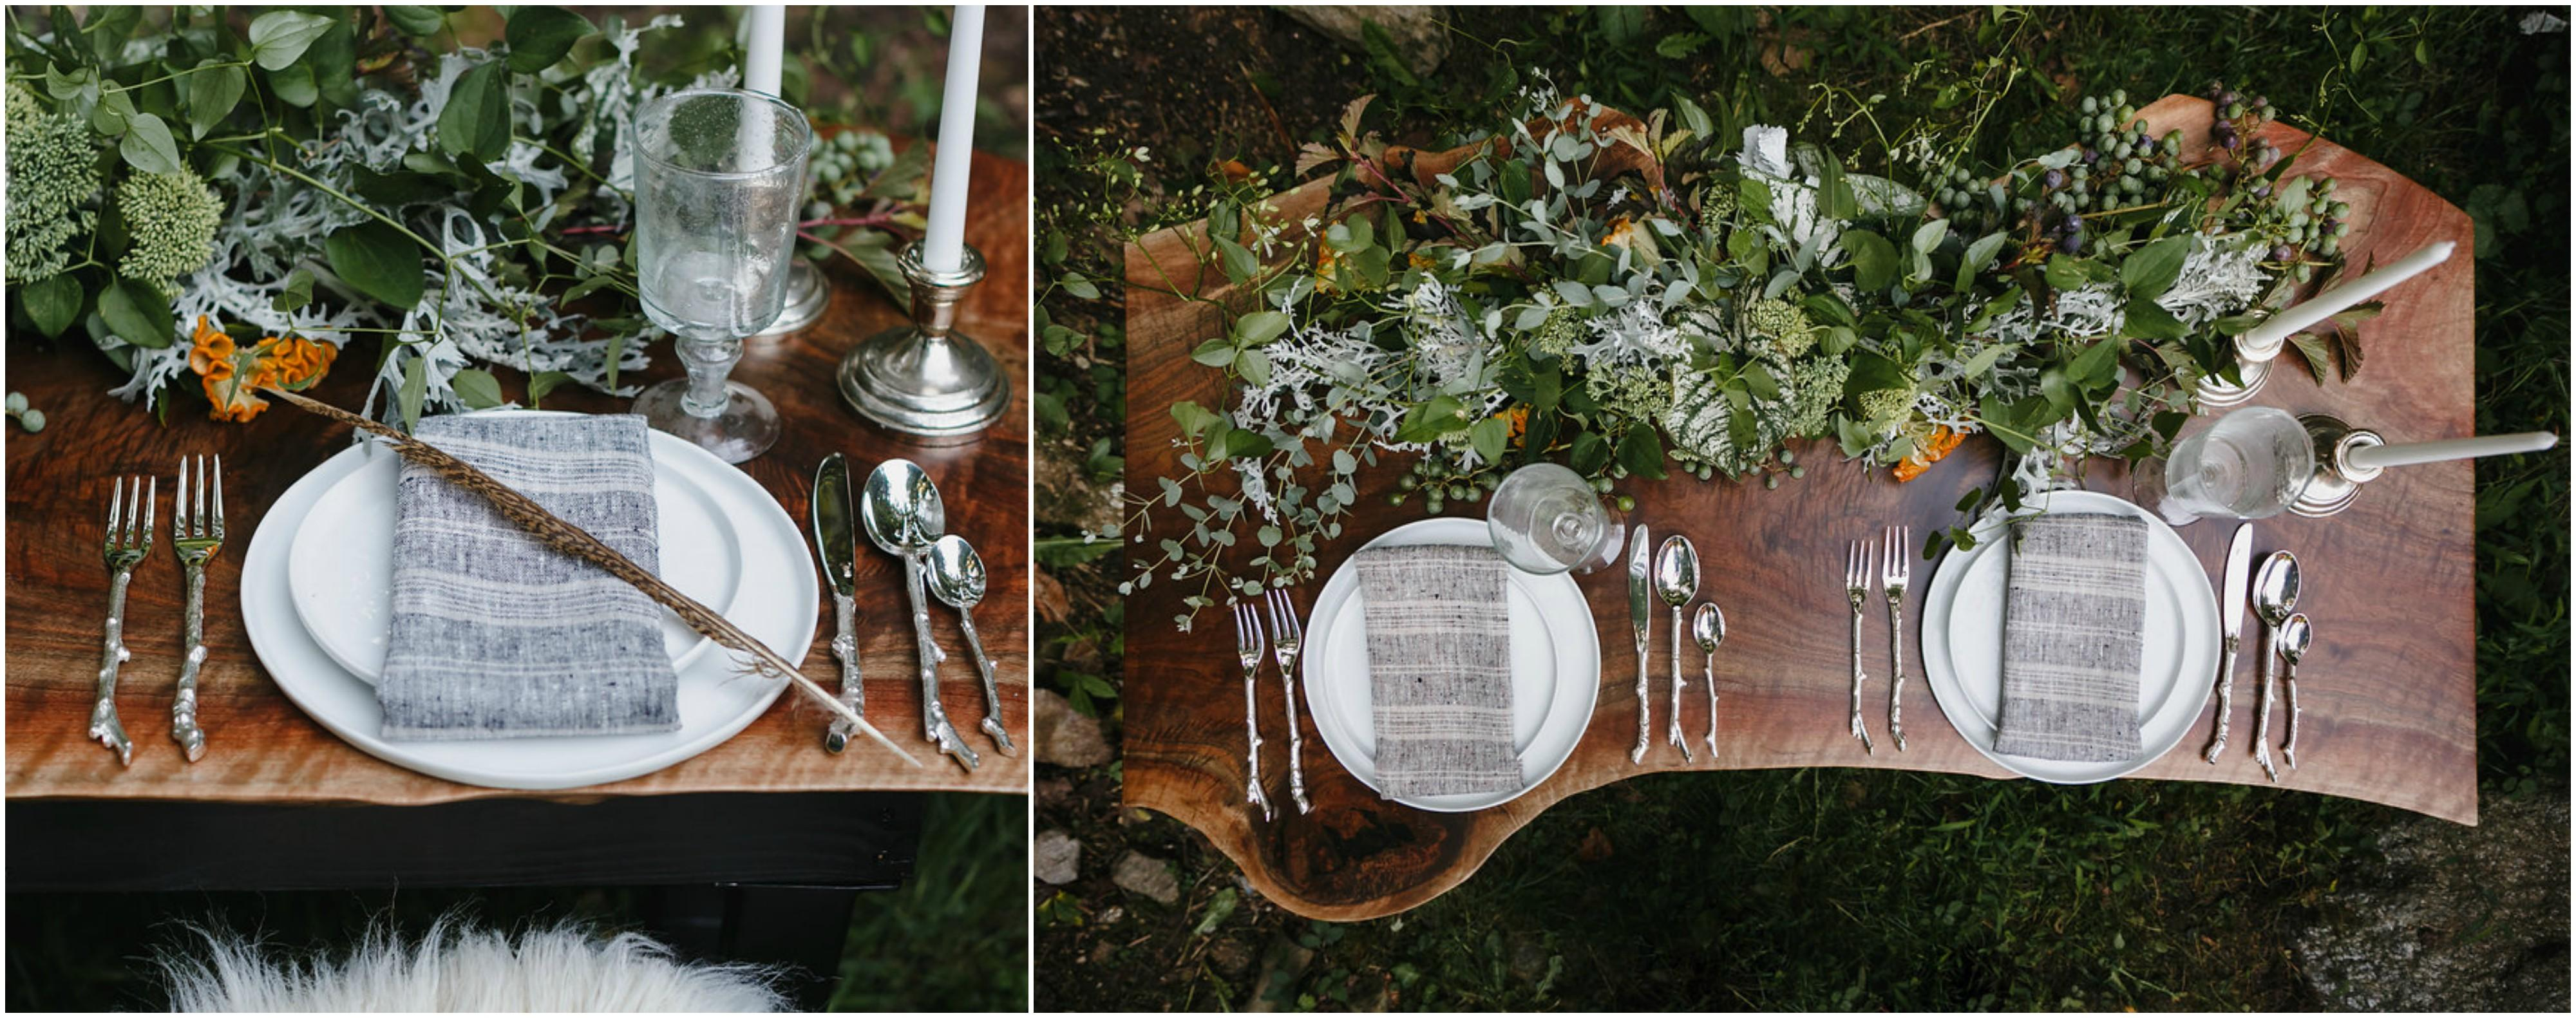 Rustic Styled Proposal in Wissahickon Valley Park L Priori Jewelry Proposal Philadelphia Wedding Ring Philly In Love Philadelphia Weddings